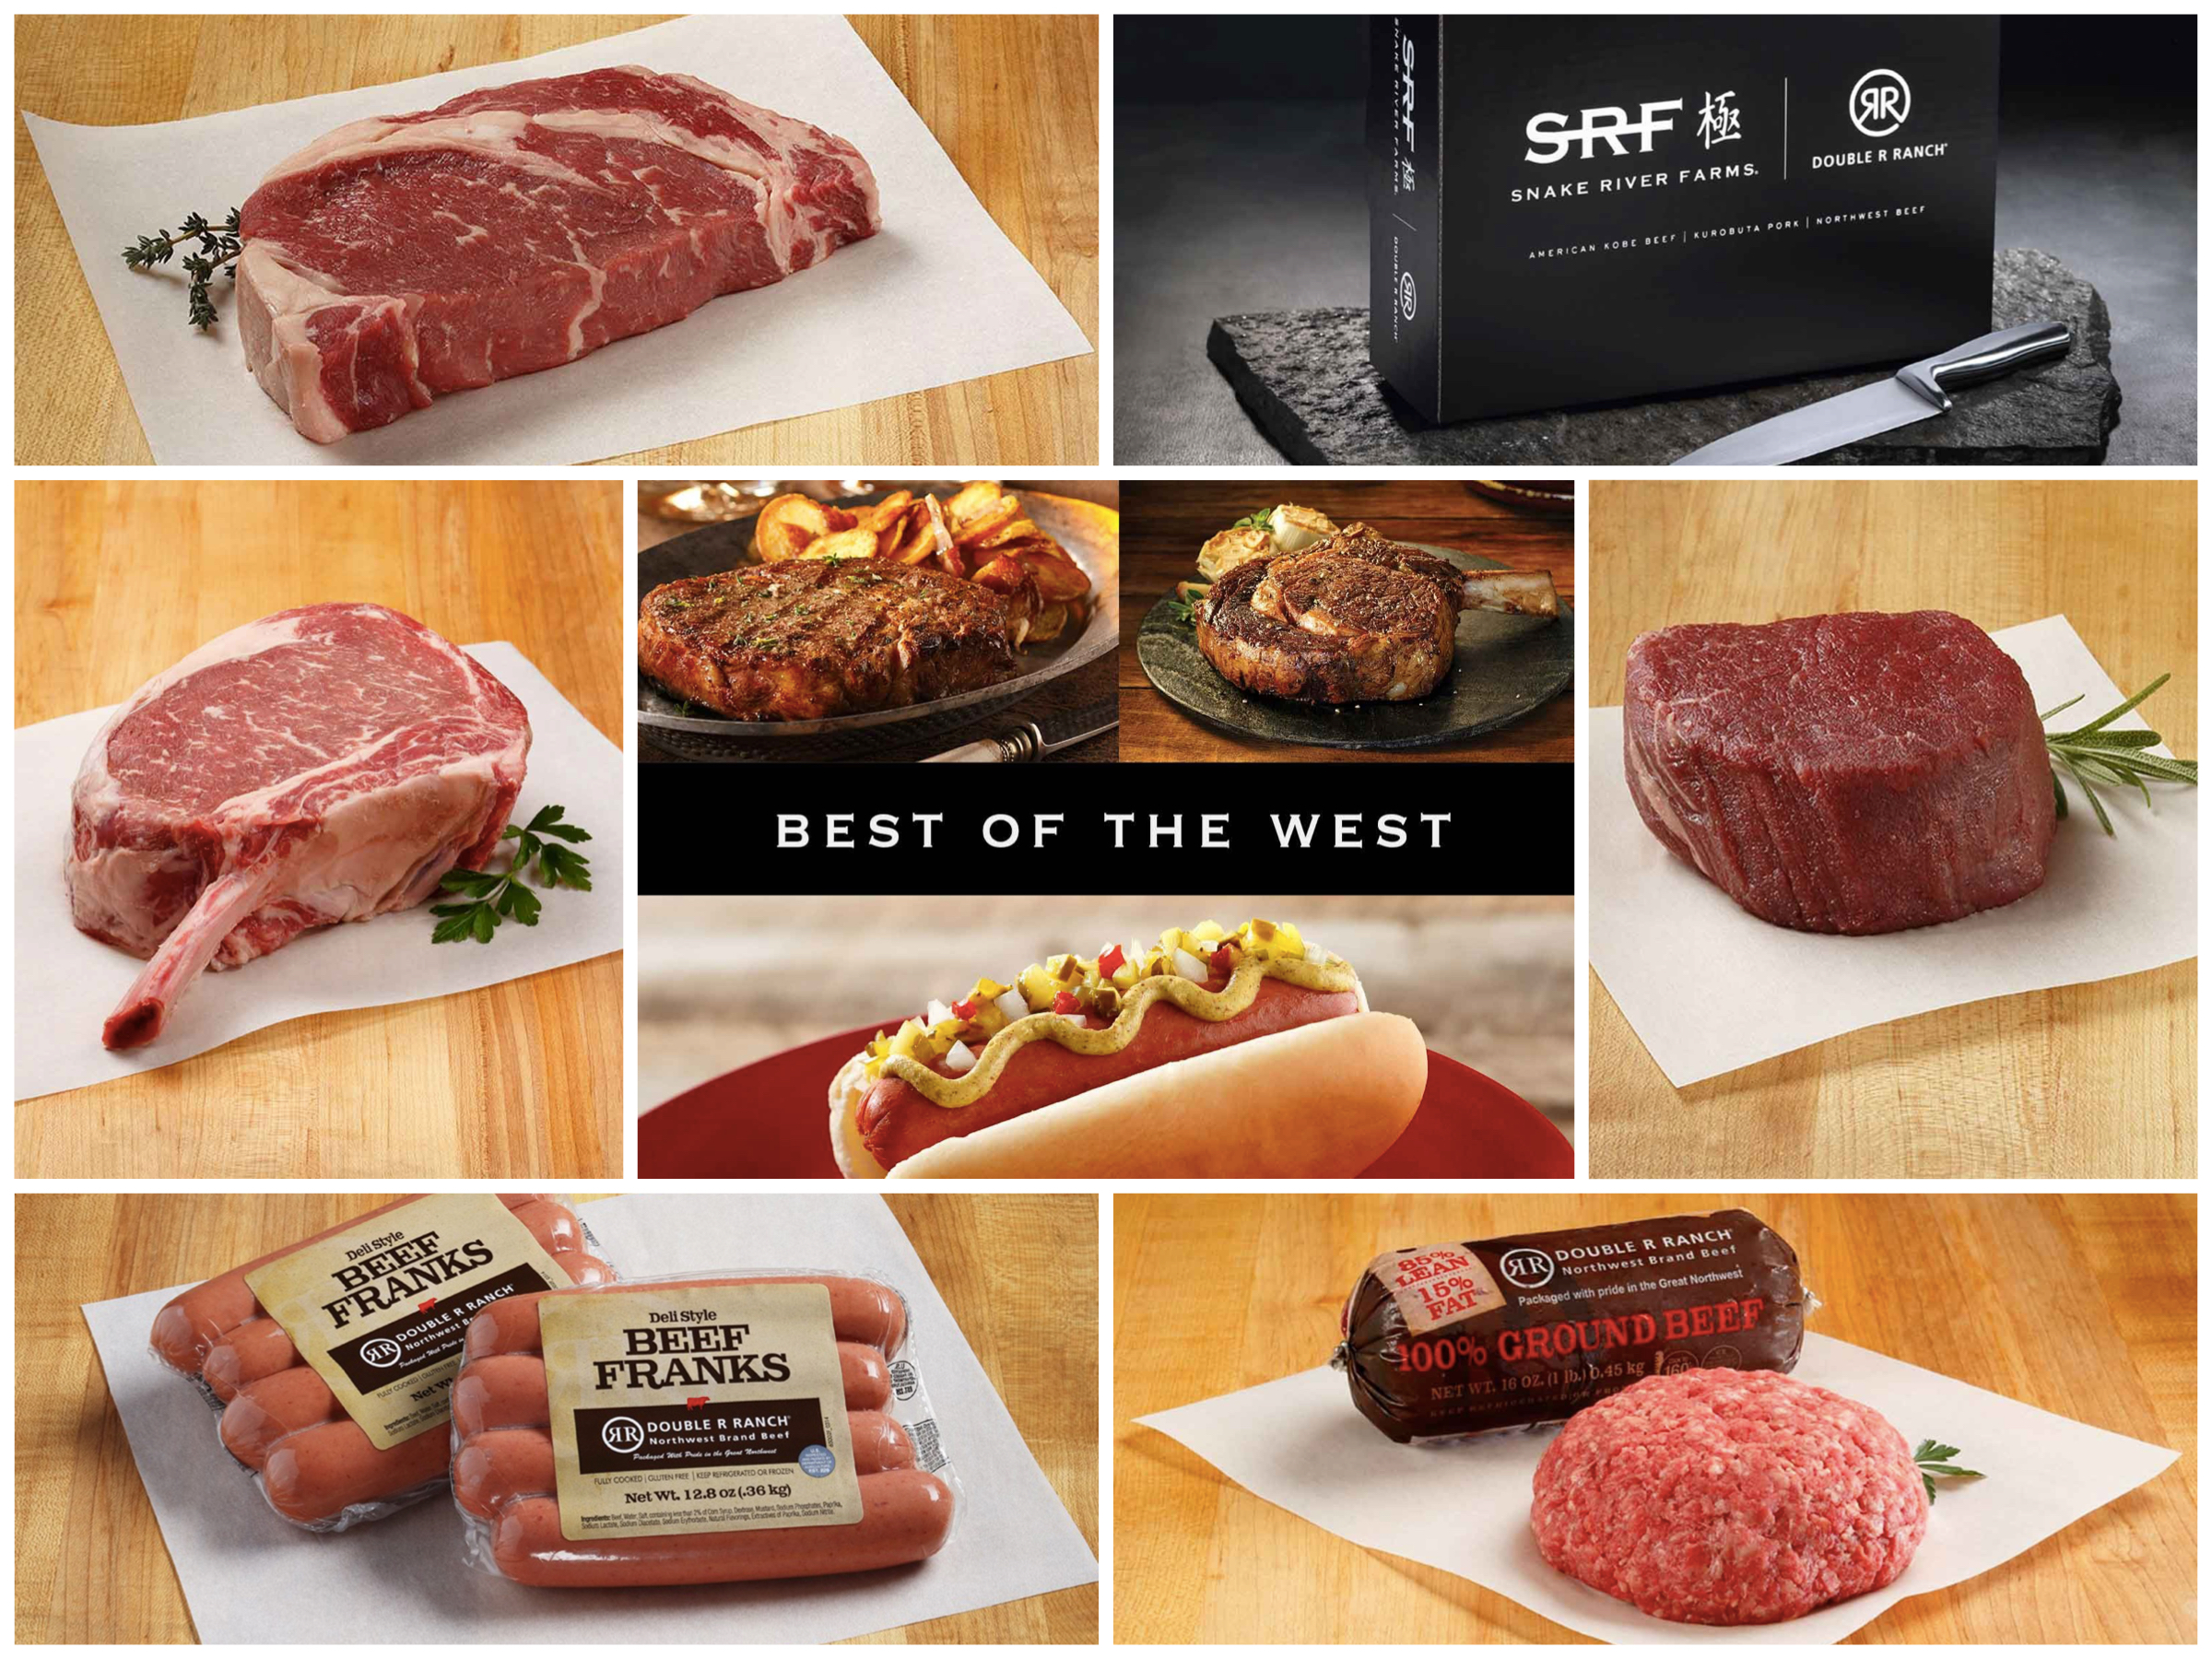 Best of the West Grilling Package, Realtor Closing Gift Ideas Over $100.00